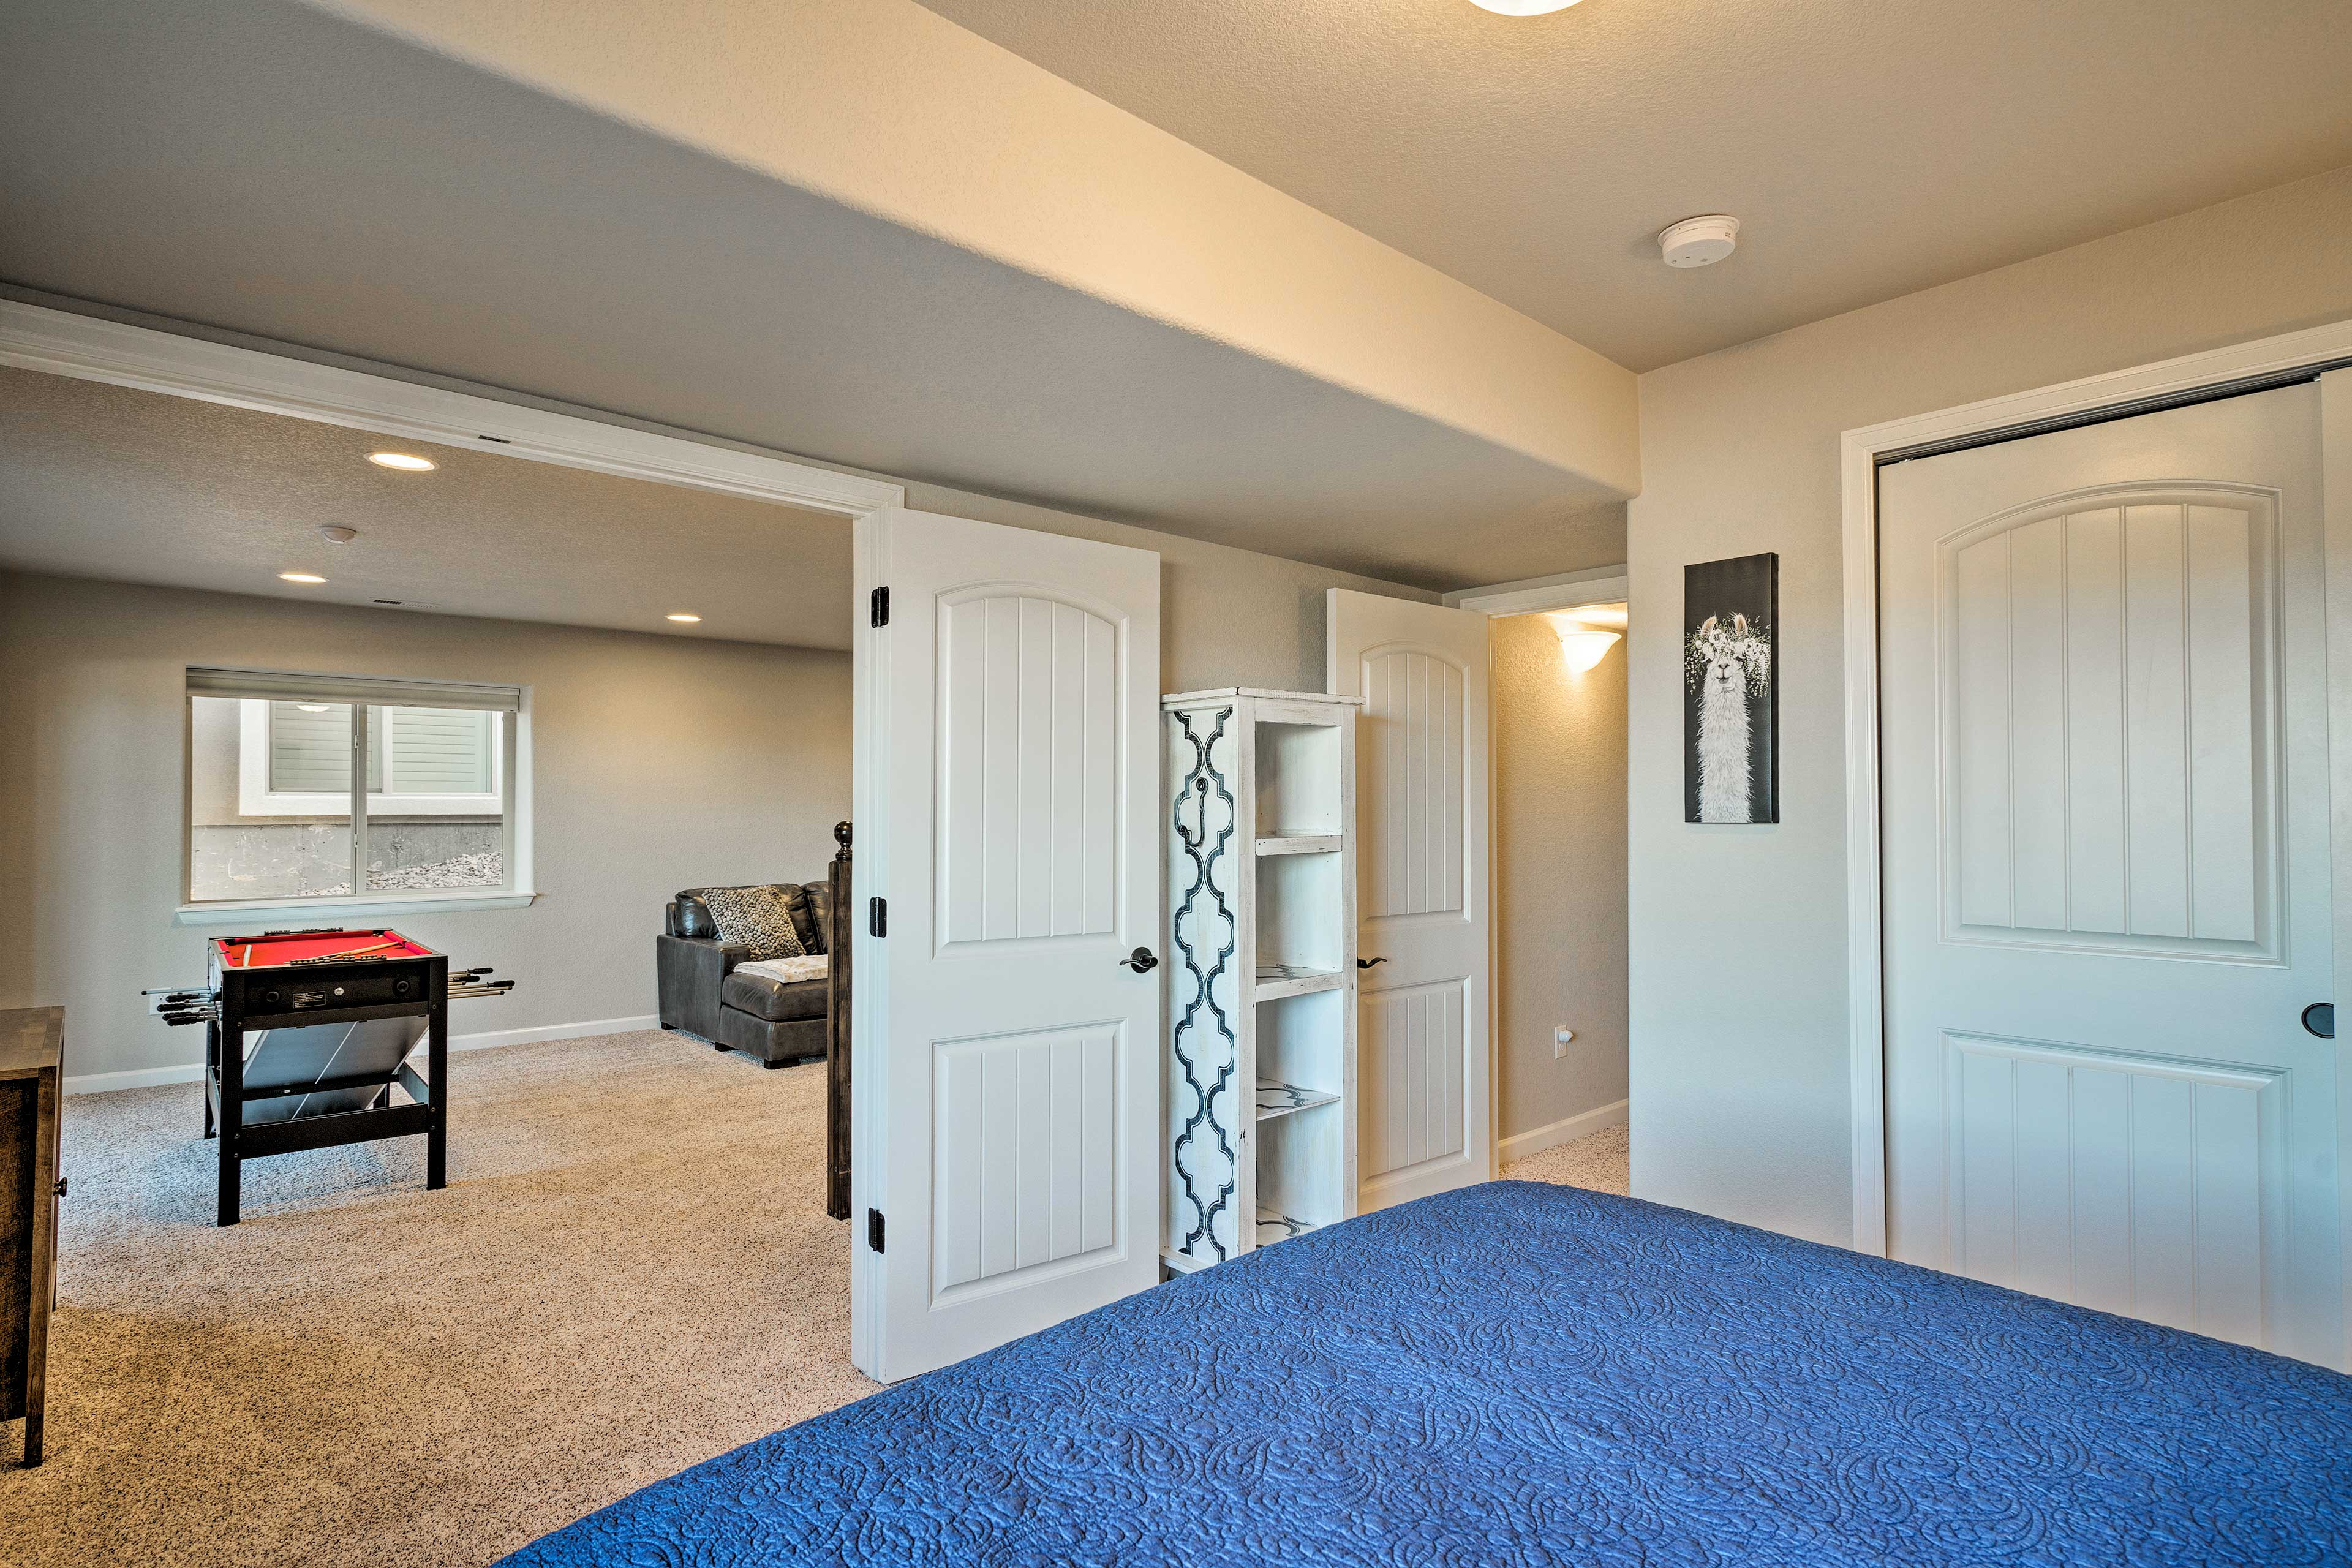 Double doors open up to reveal a comfortable downstairs bedroom!